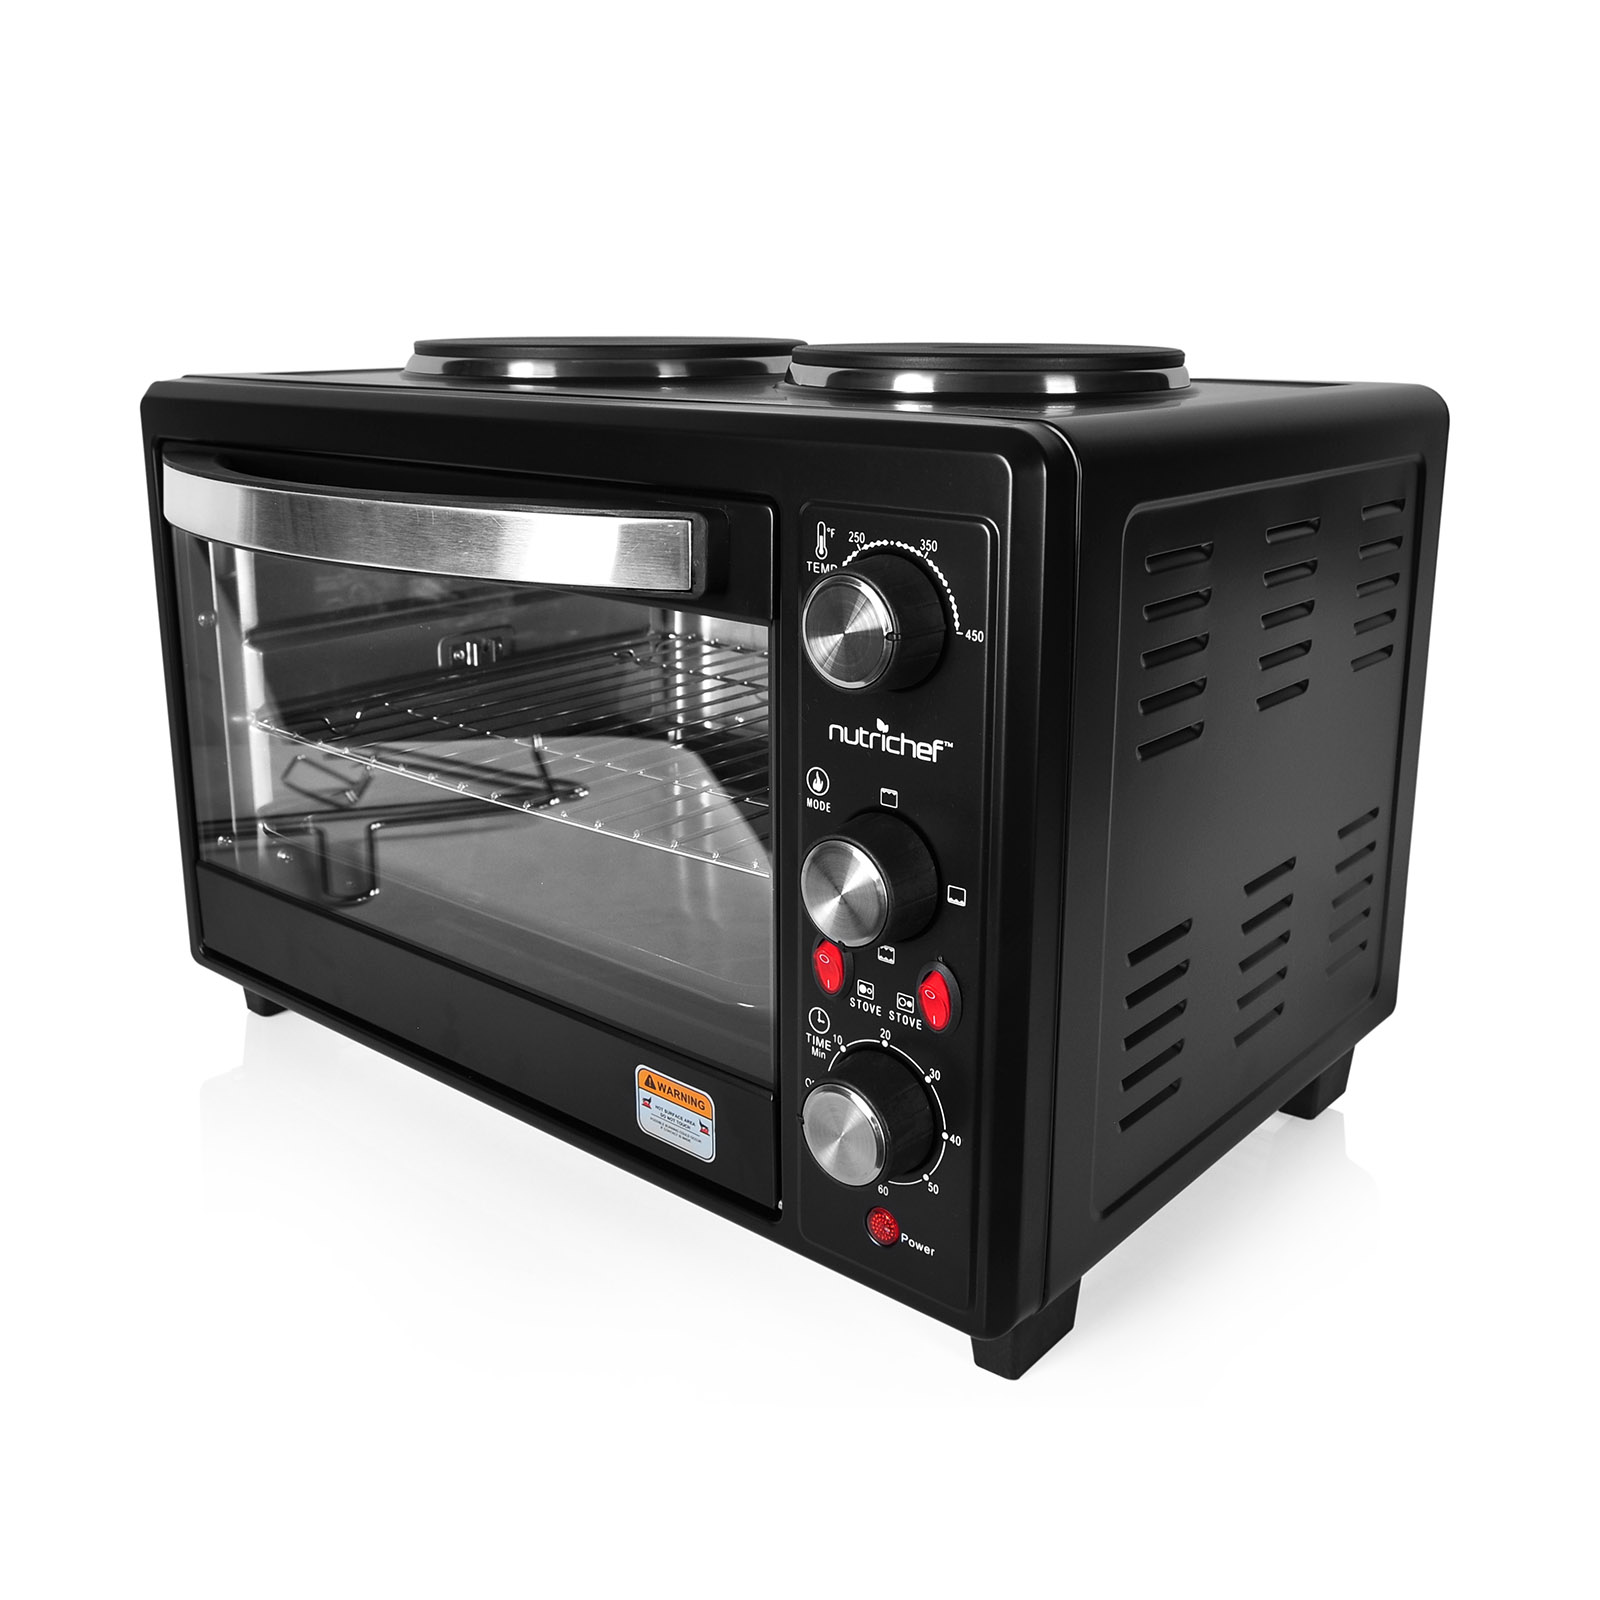 Image of NutriChef 97099431M Multifunction Kitchen Oven, Countertop Rotisserie Cooker with Dual Hot Plates, Black